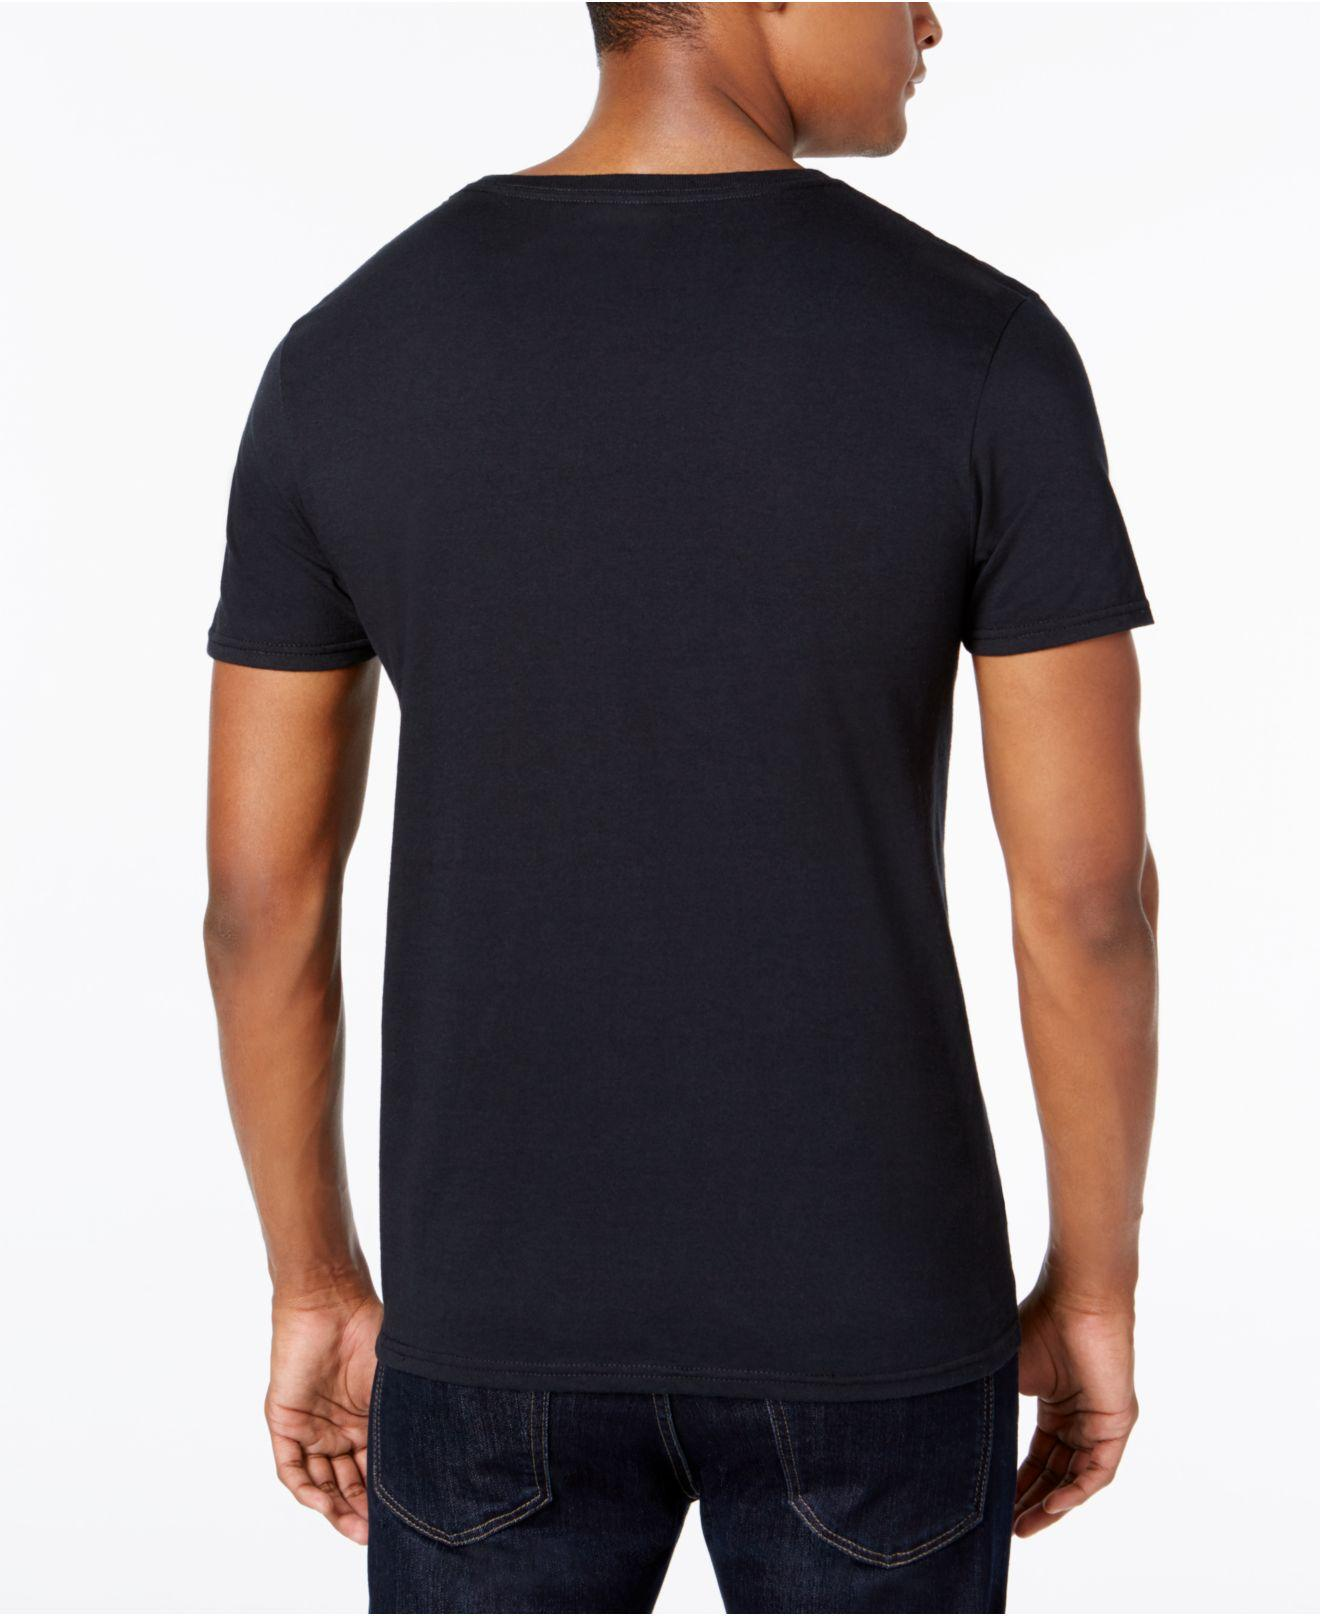 lyst kenneth cole reaction mens vneck logo graphic t